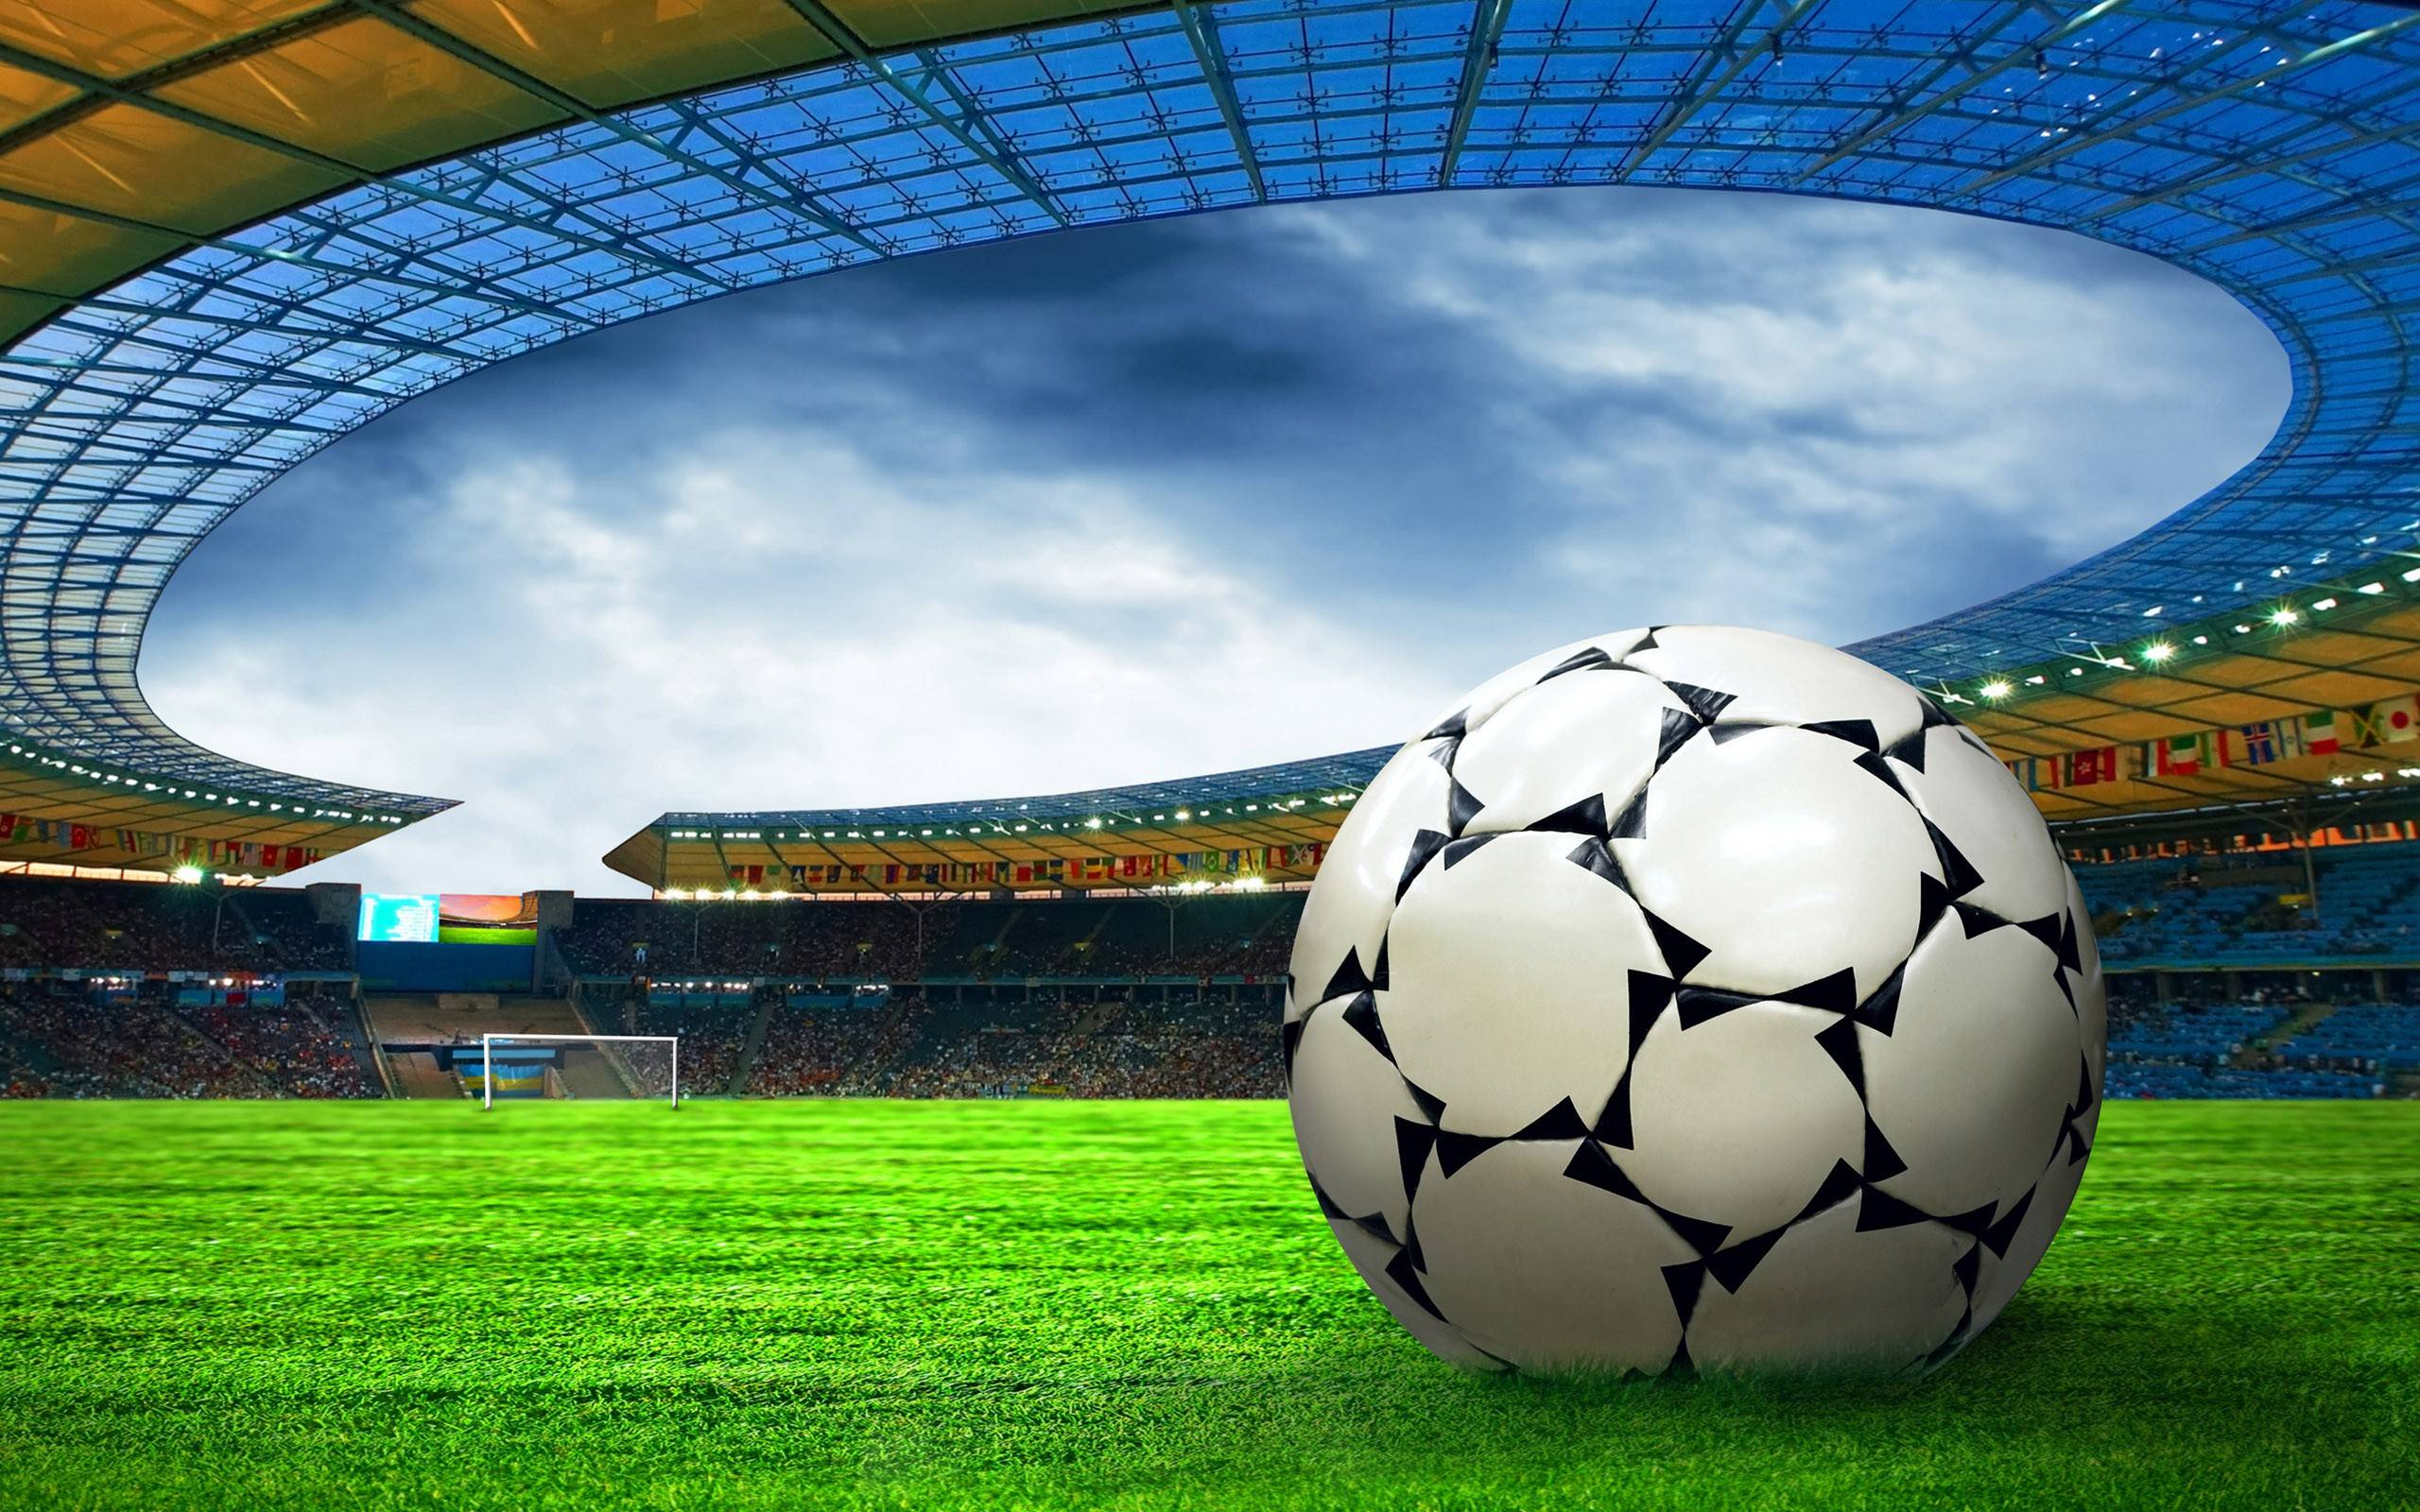 Awesome Soccer Backgrounds: Soccer Backgrounds Image